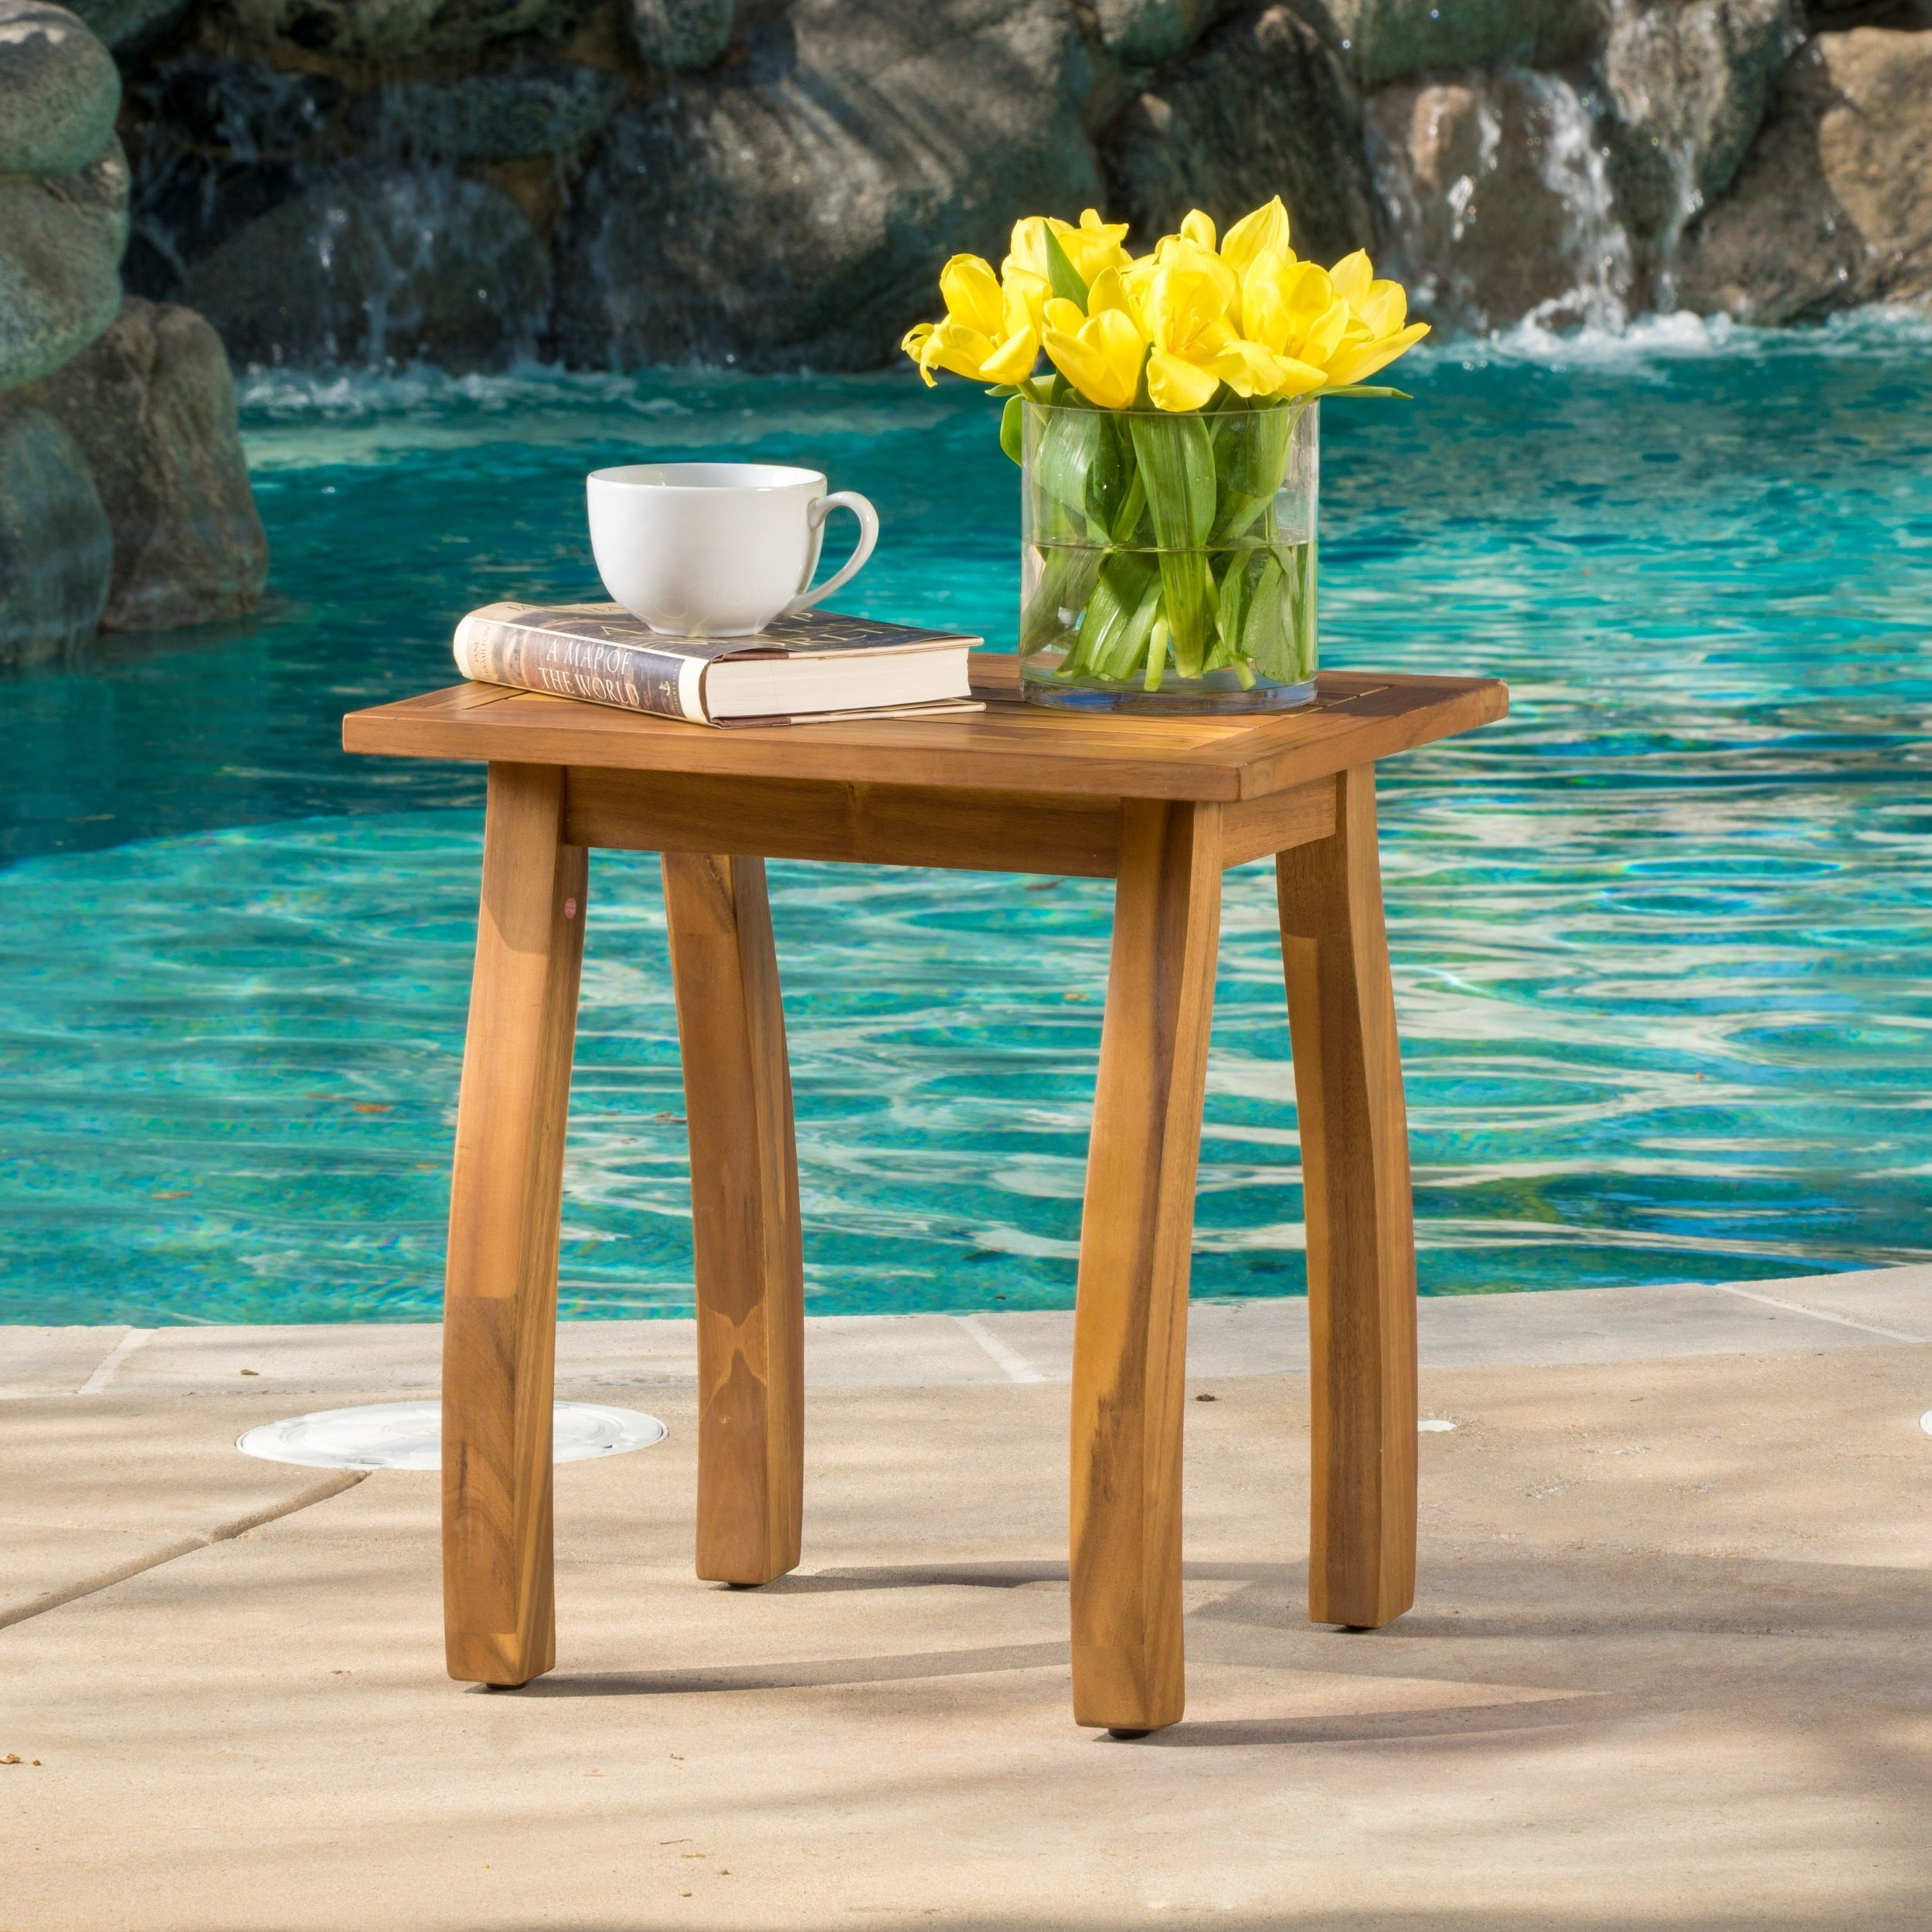 lucca outdoor acacia wood side table christopher knight home accent free shipping today unique chairs foosball pottery barn red console mosaic patio furniture clearance backyard